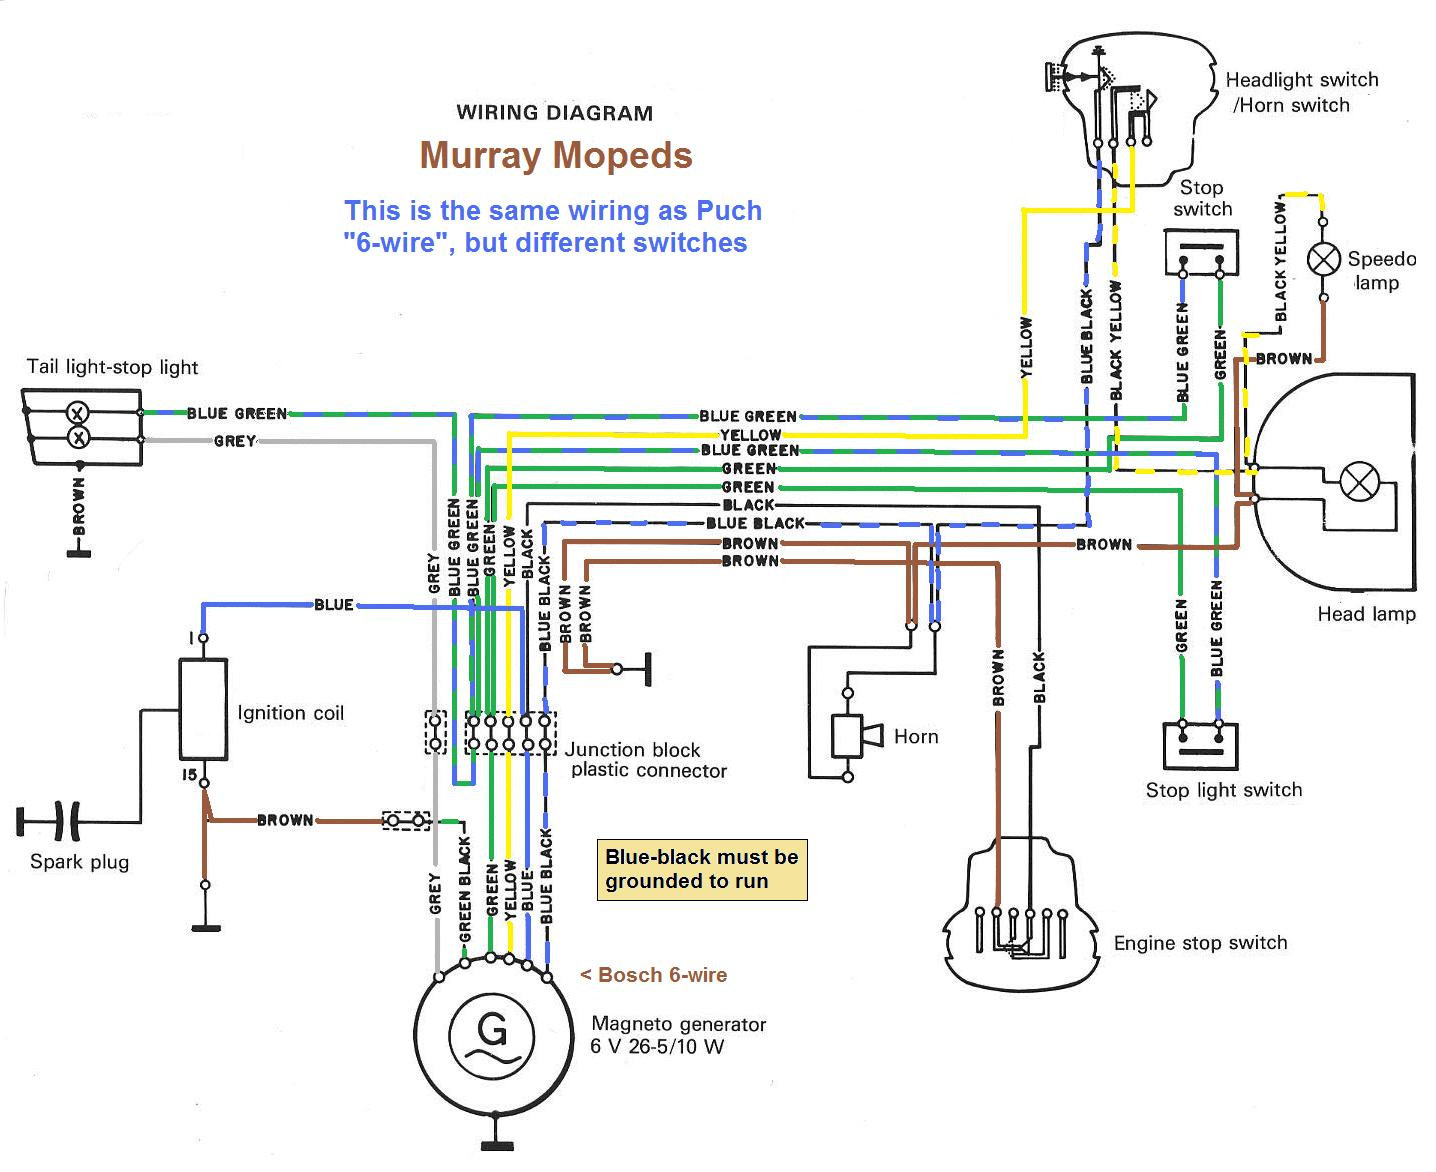 Murray Wiring Schematic on toro lawn mower parts diagram